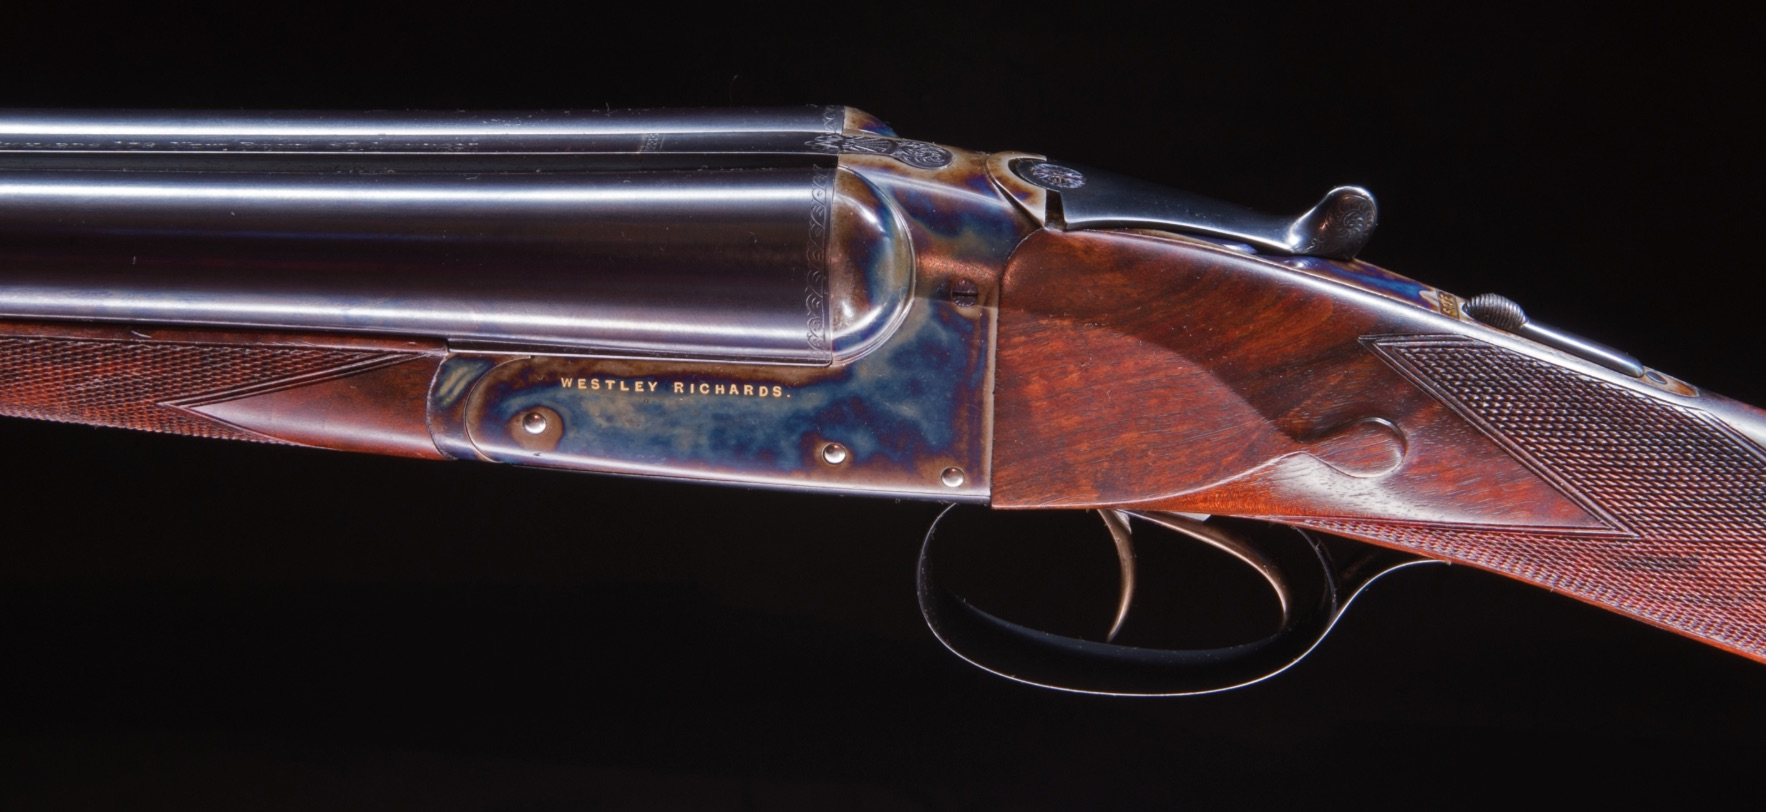 Westley Richards Archives - Dogs and Doubles